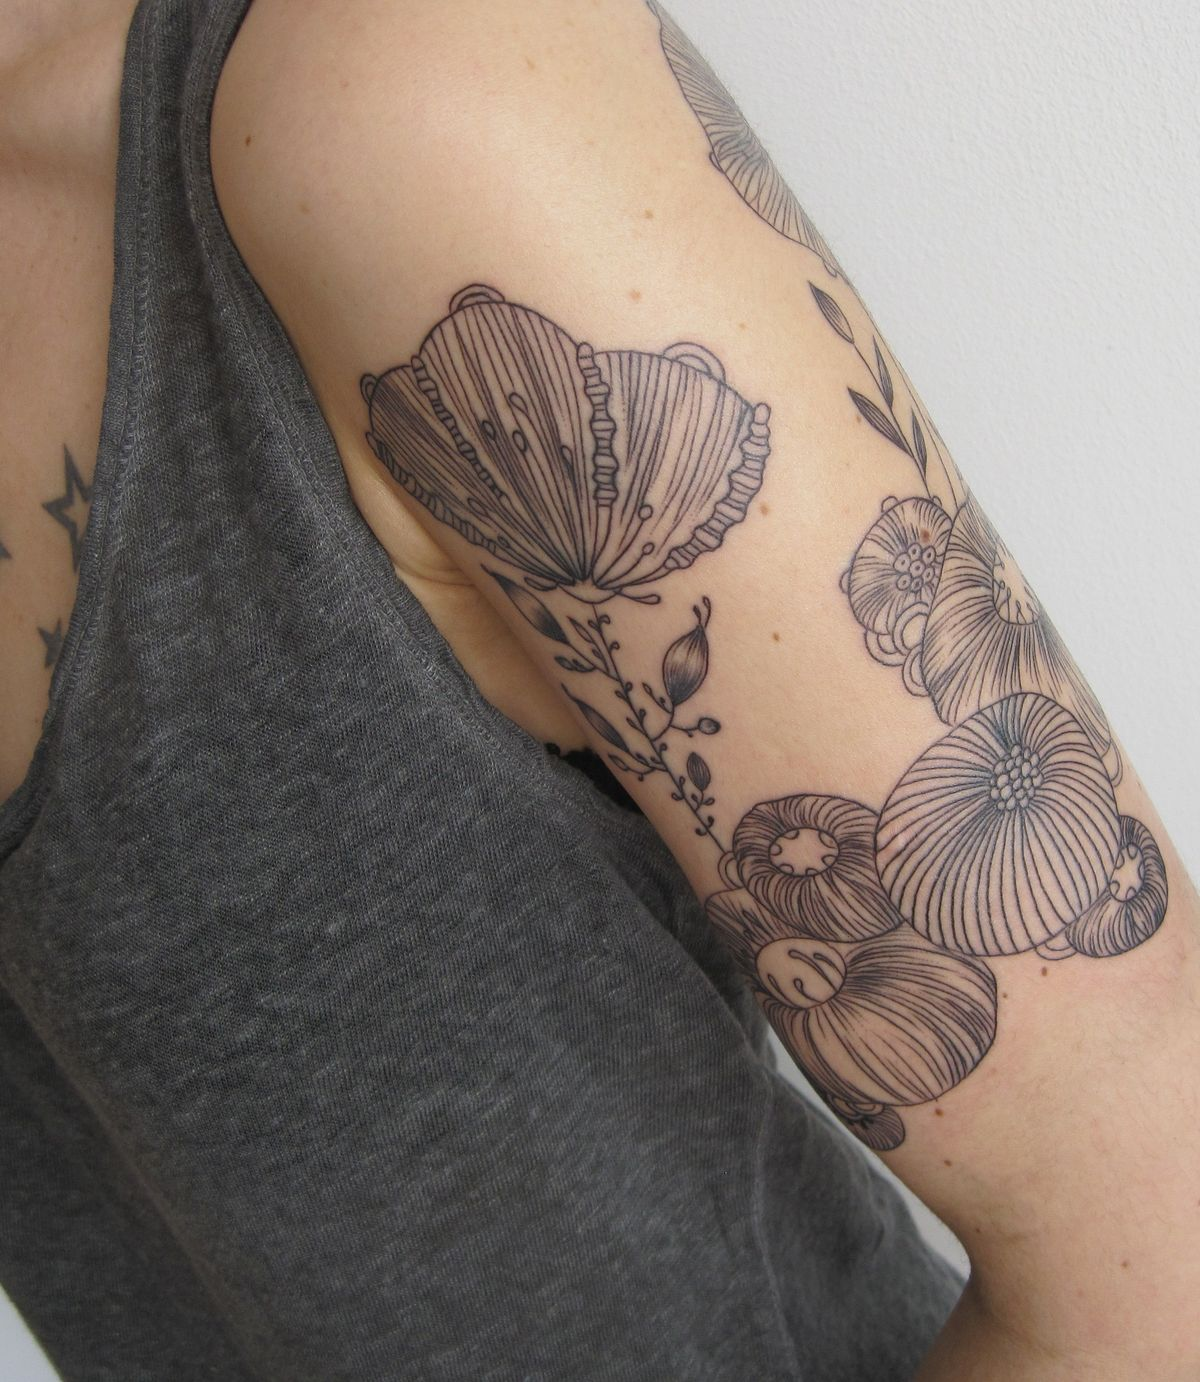 Pin by brianna brailey on things picture tattoos